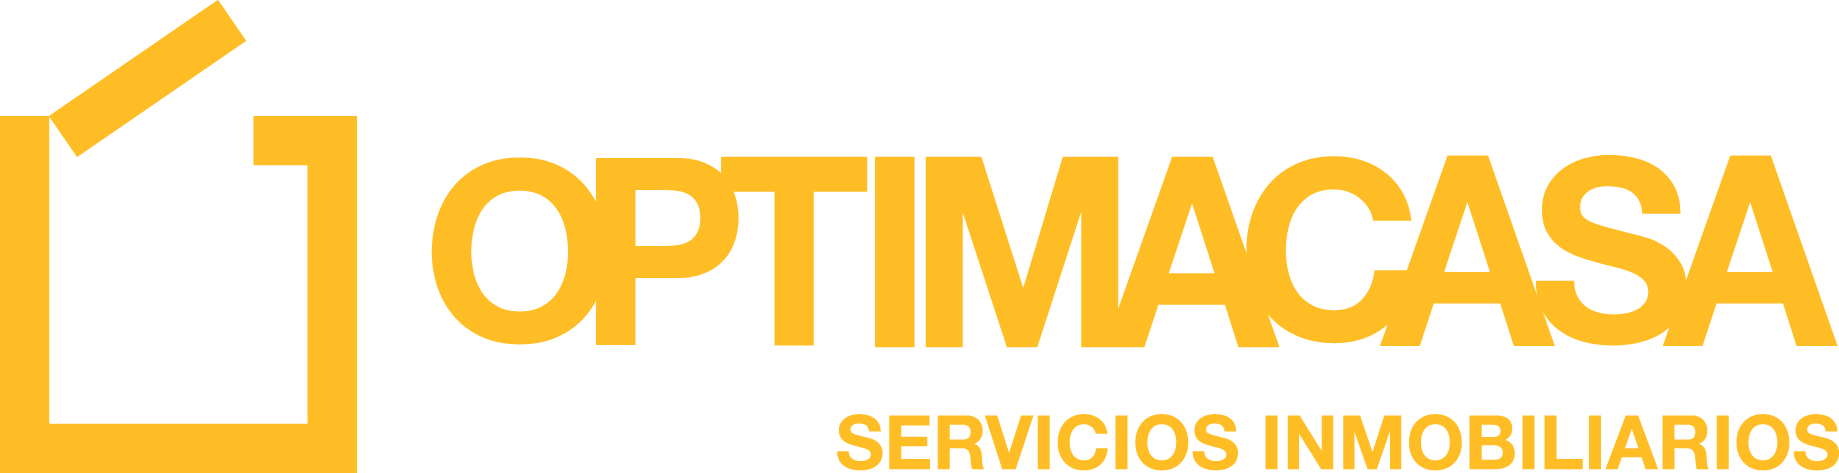 optimacasa